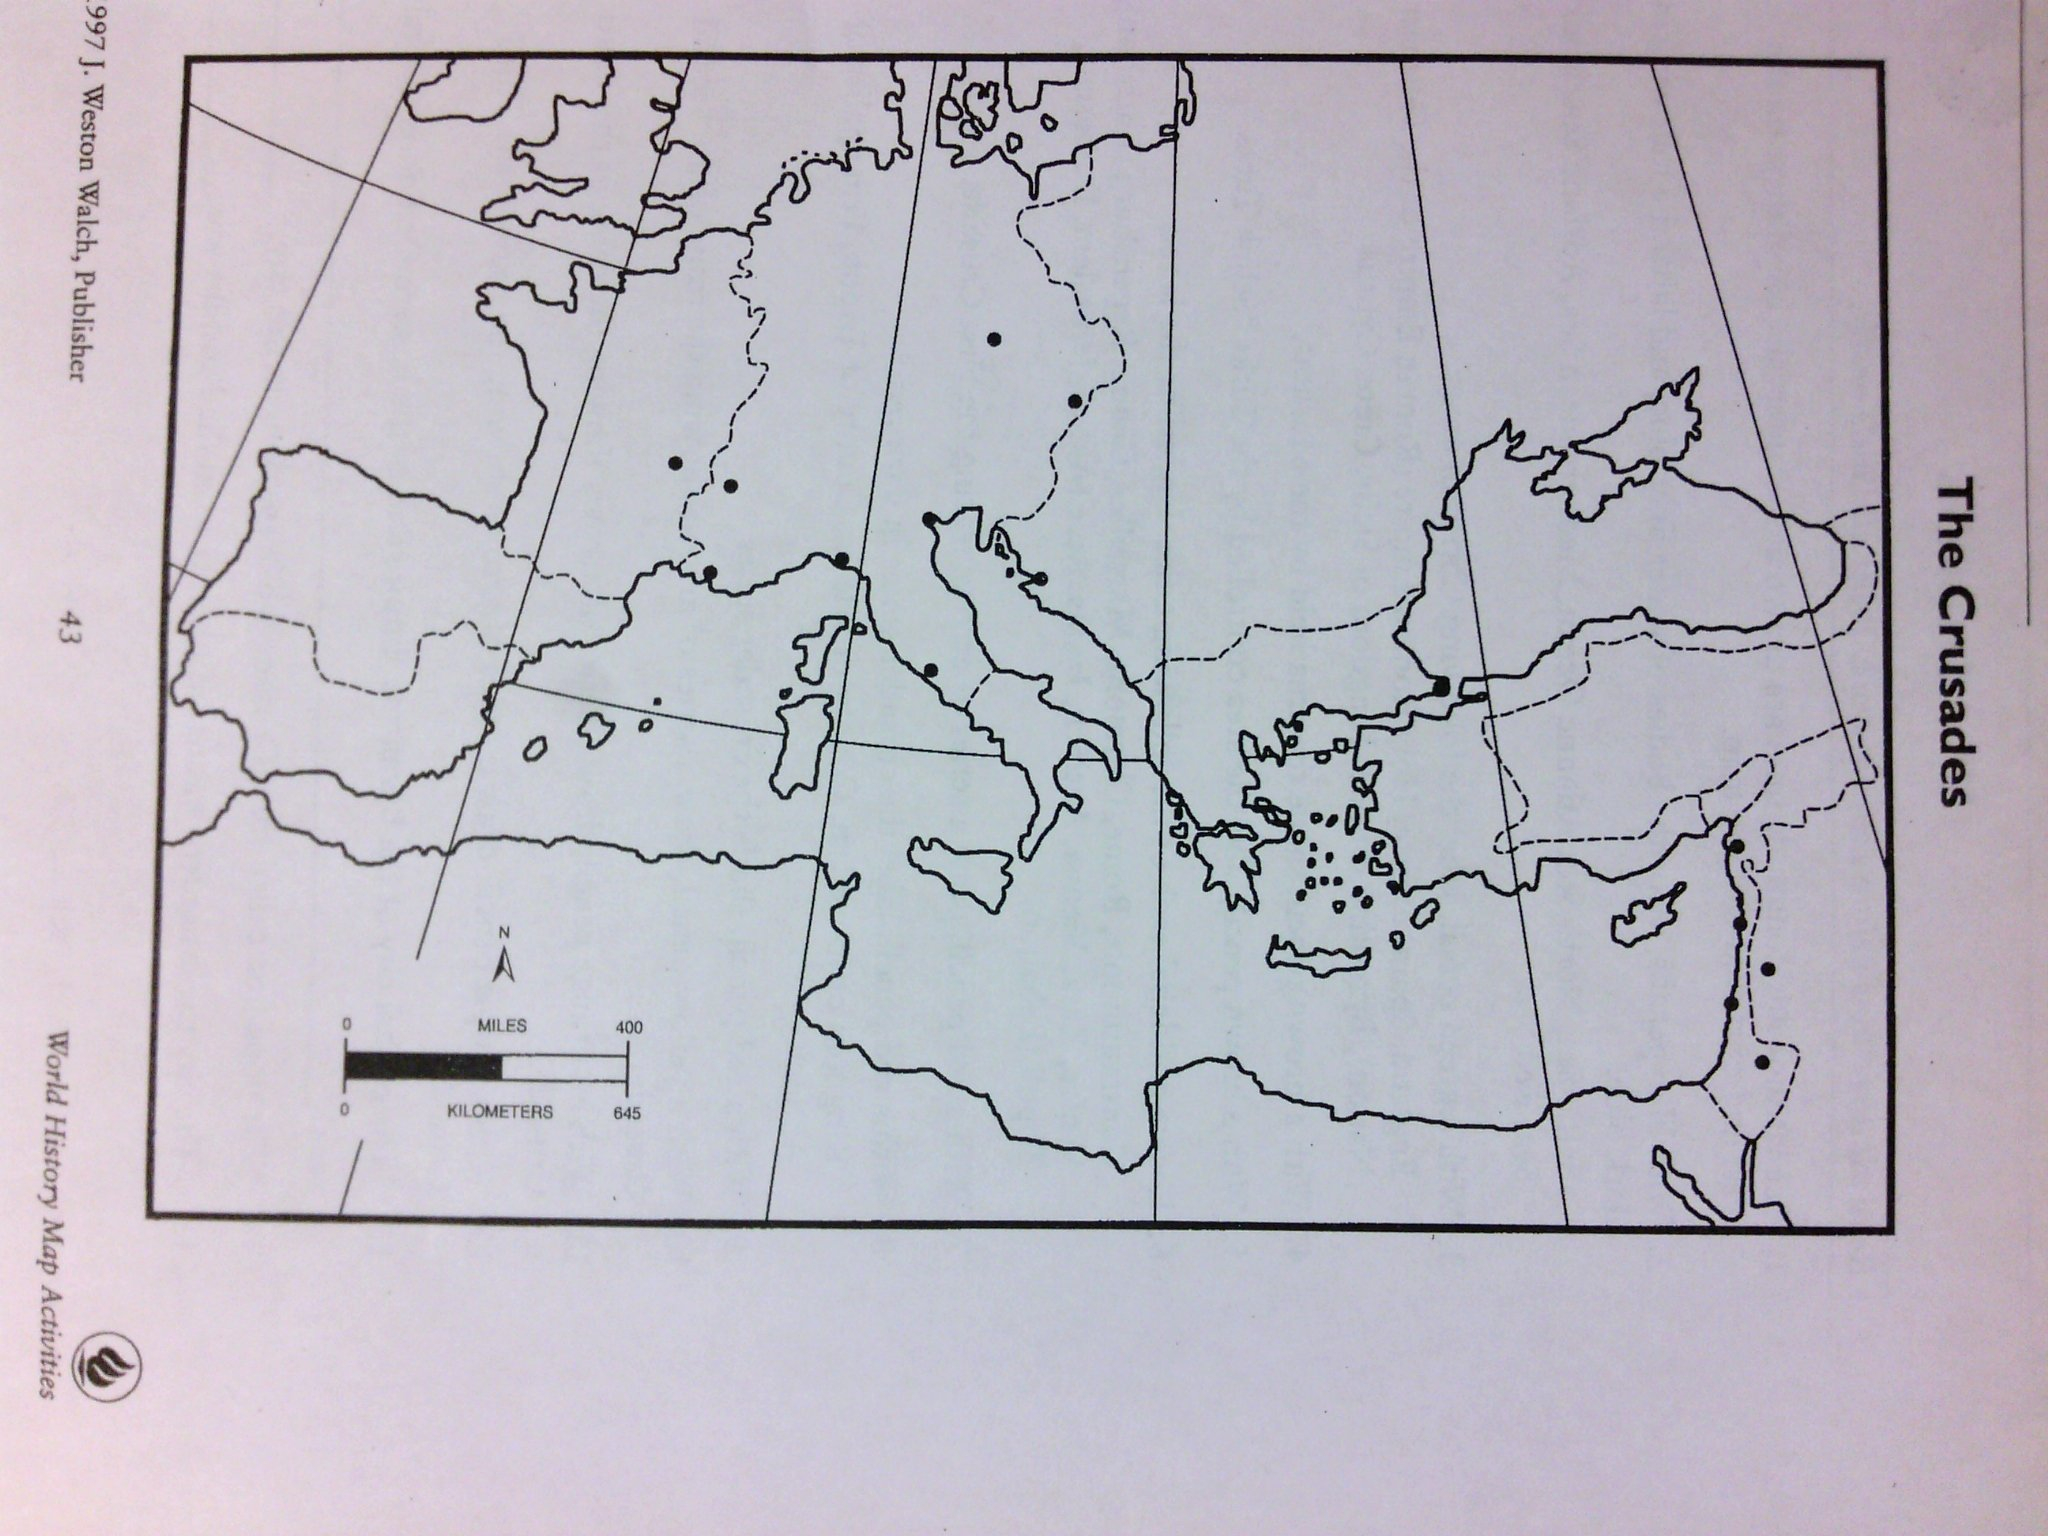 World History Maps  Mrs Hefele's Social Studies Classes Inside The Crusades Map Worksheet Answers